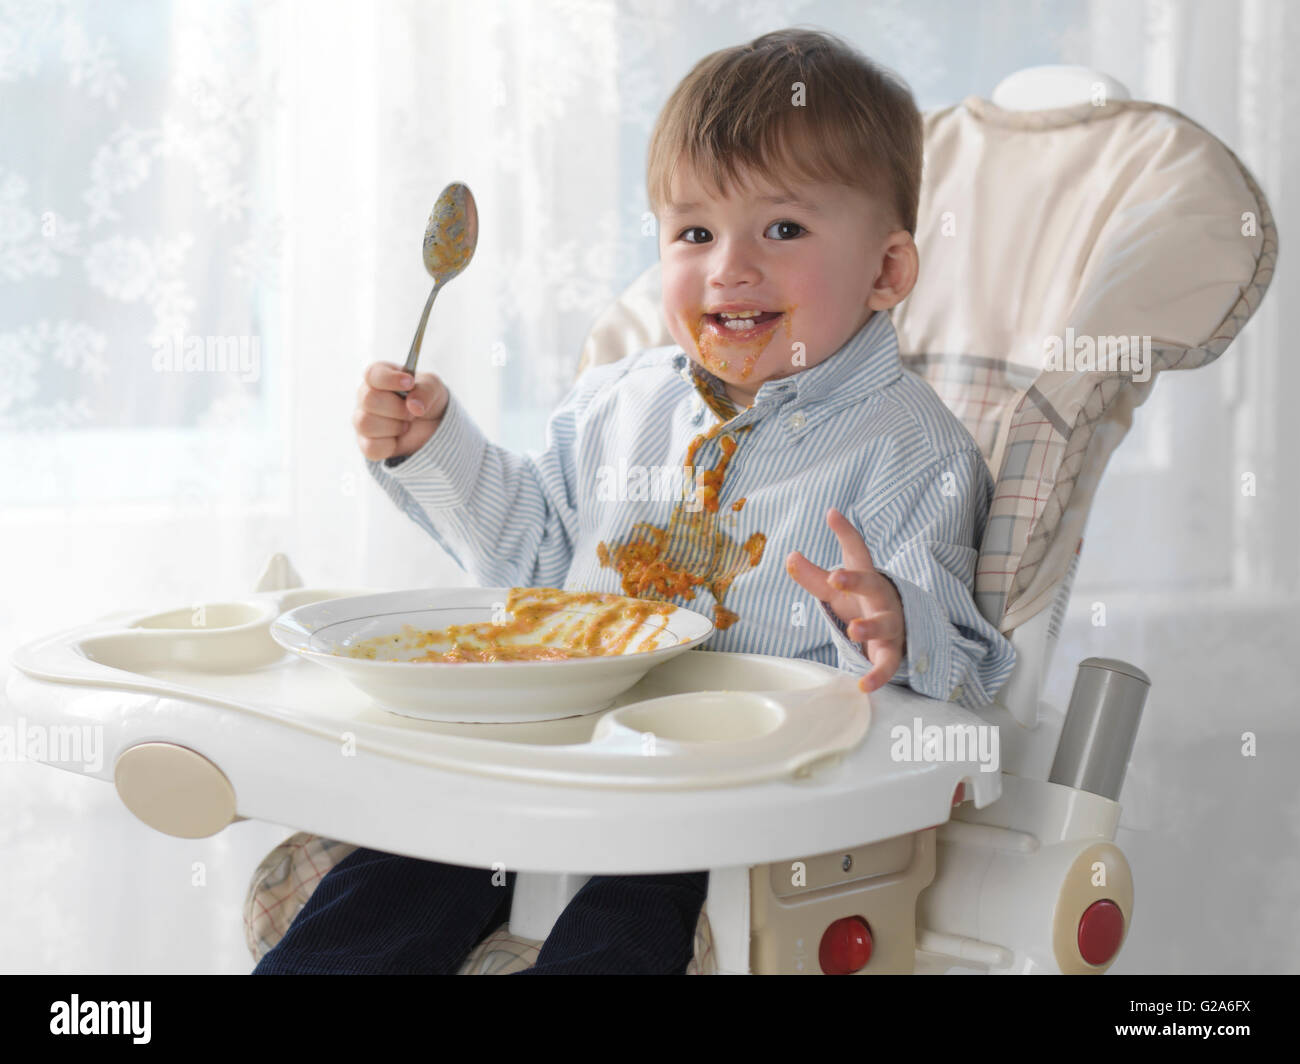 Baby Chair For Eating Toddler Boy Sitting In A High Chair Eating Soup With A